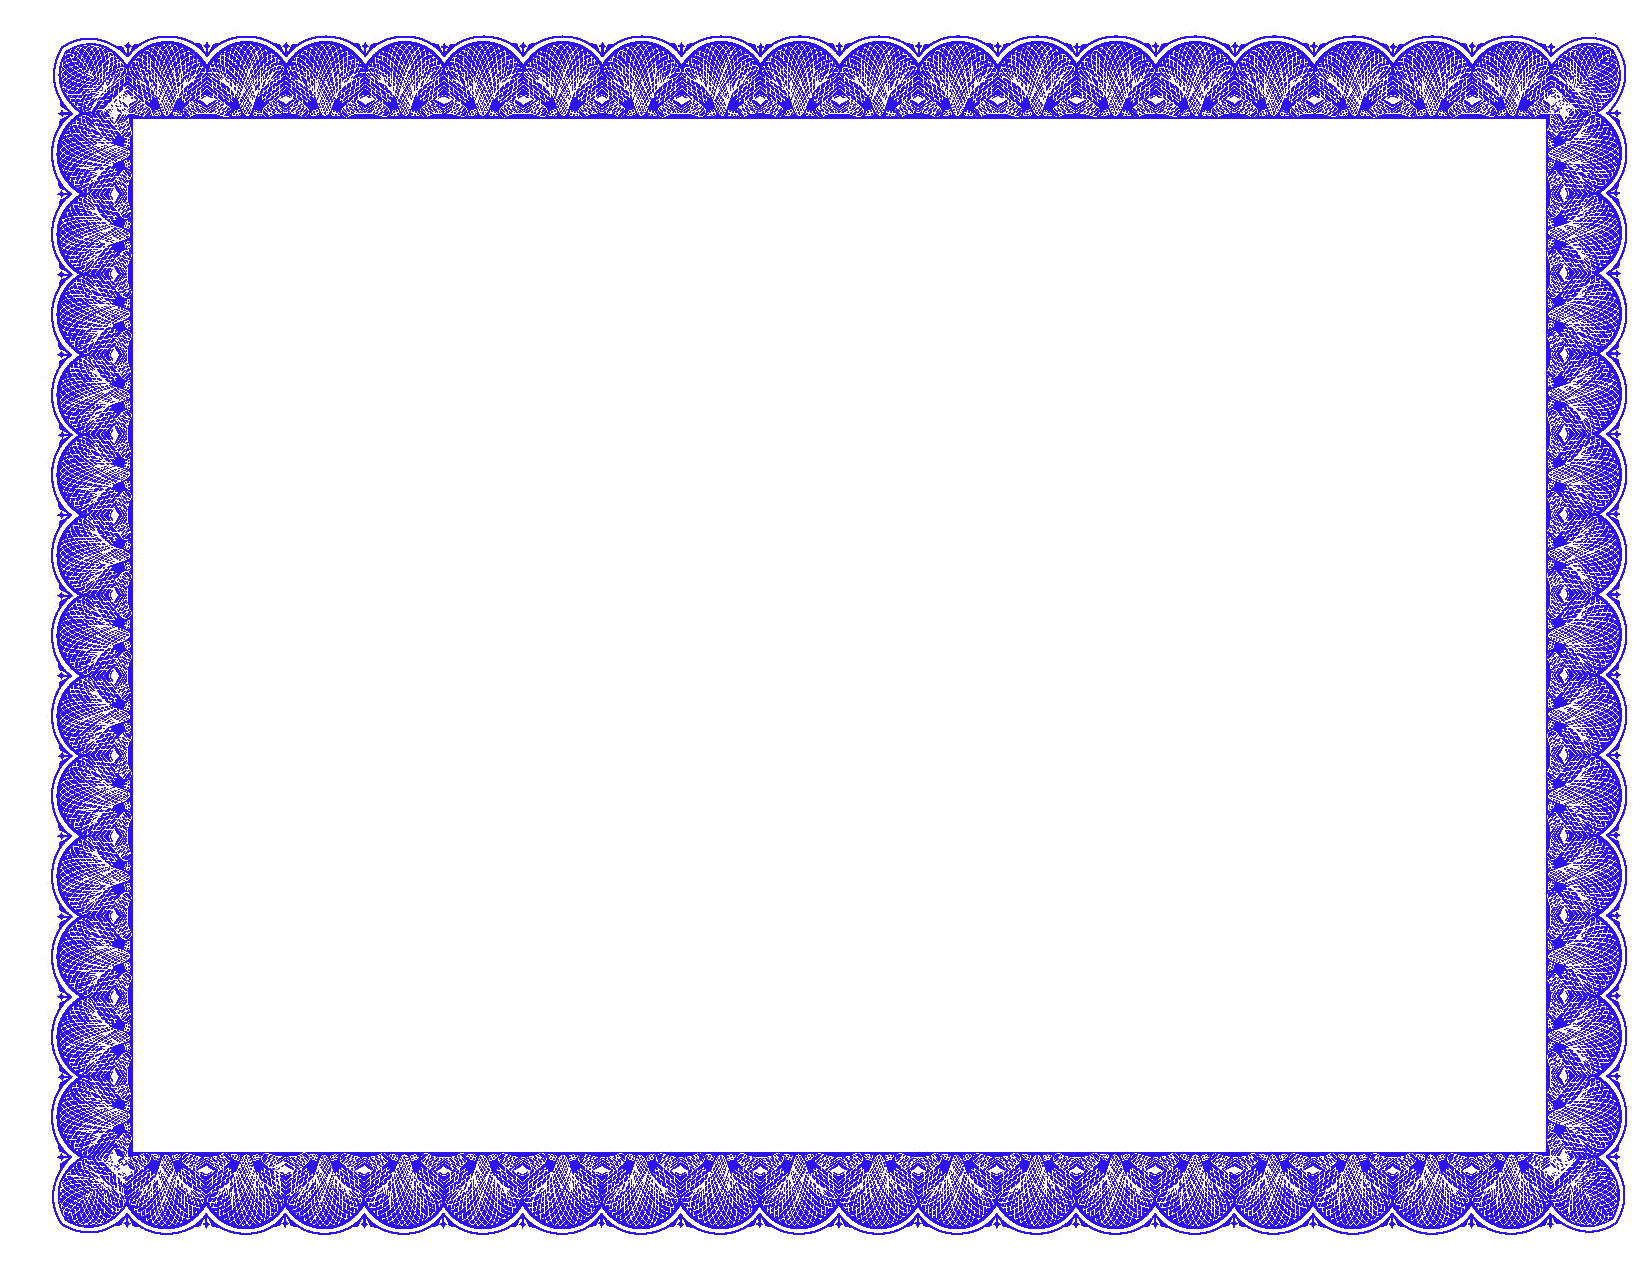 Certificate borders clipart templets image transparent download 10 Free Certificate Border PSD Images - Blue Certificate Border Clip ... image transparent download